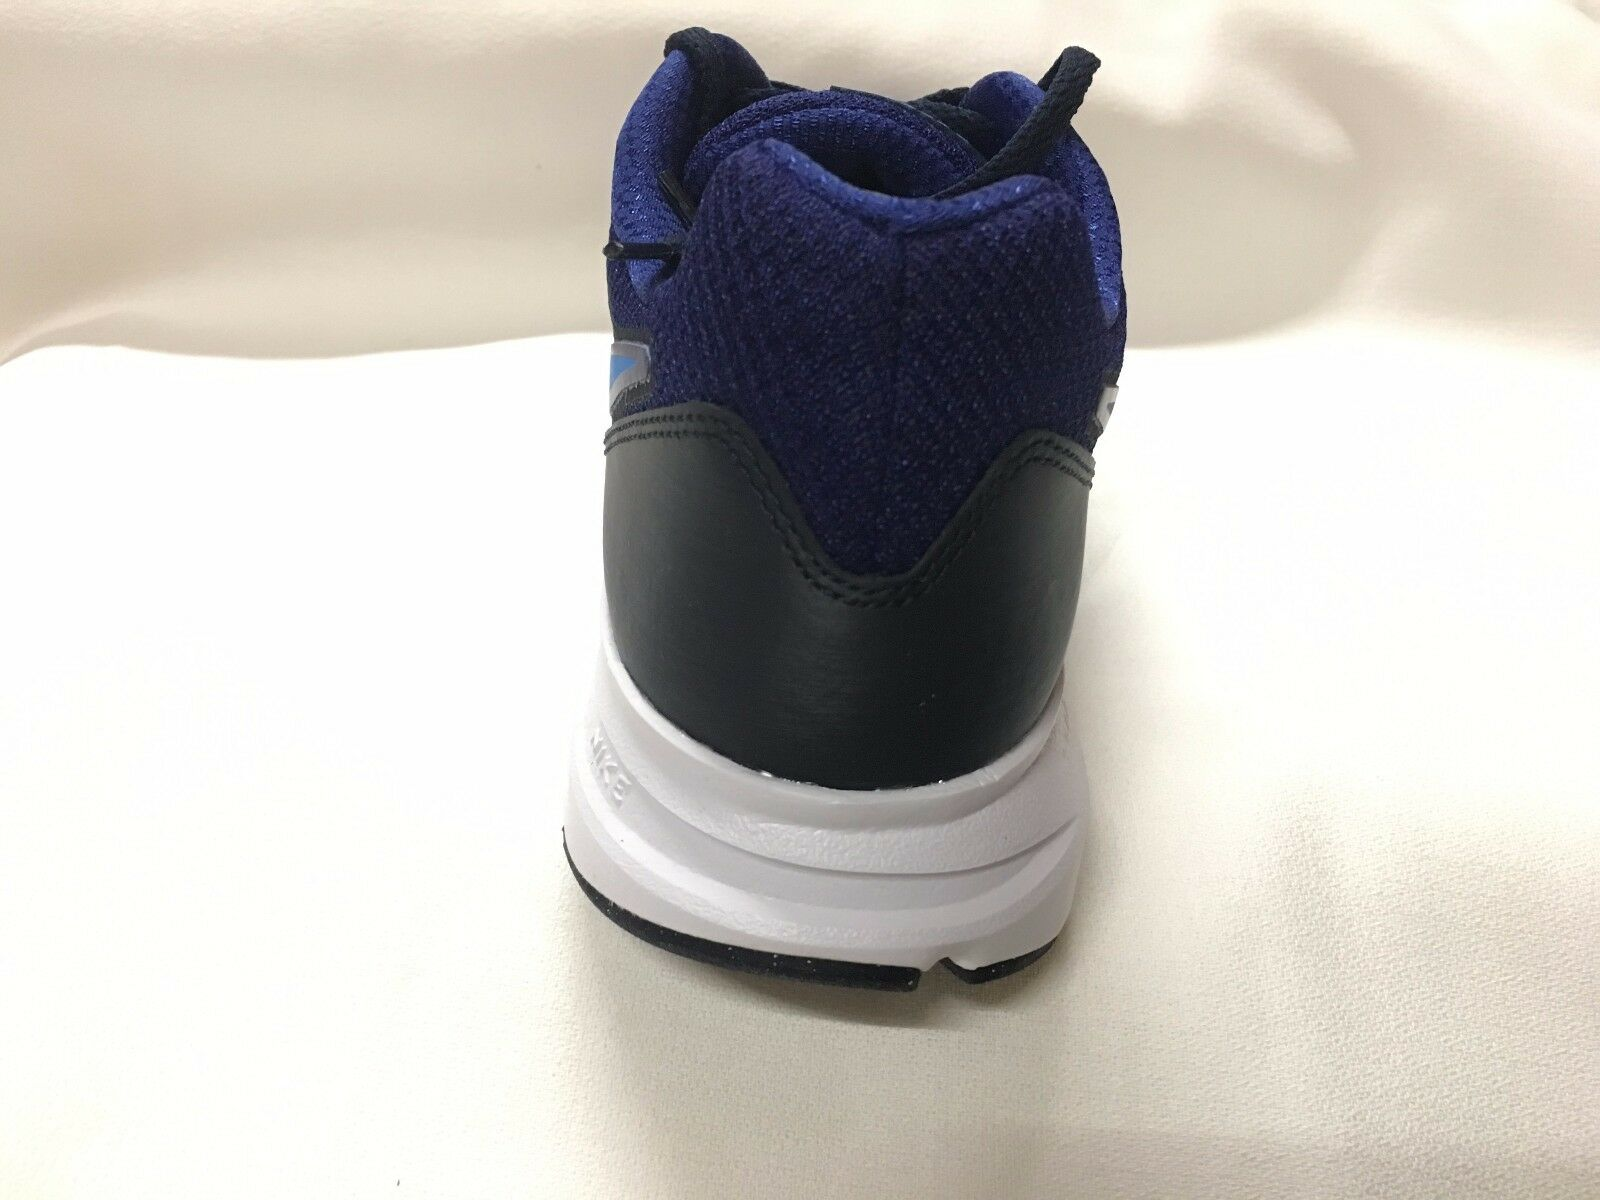 232e4bfbd69 ... NEW Men Nike Downshifter Downshifter Downshifter 6 Running Athletic  Shoes Sneaker size 6-13 684652 ...